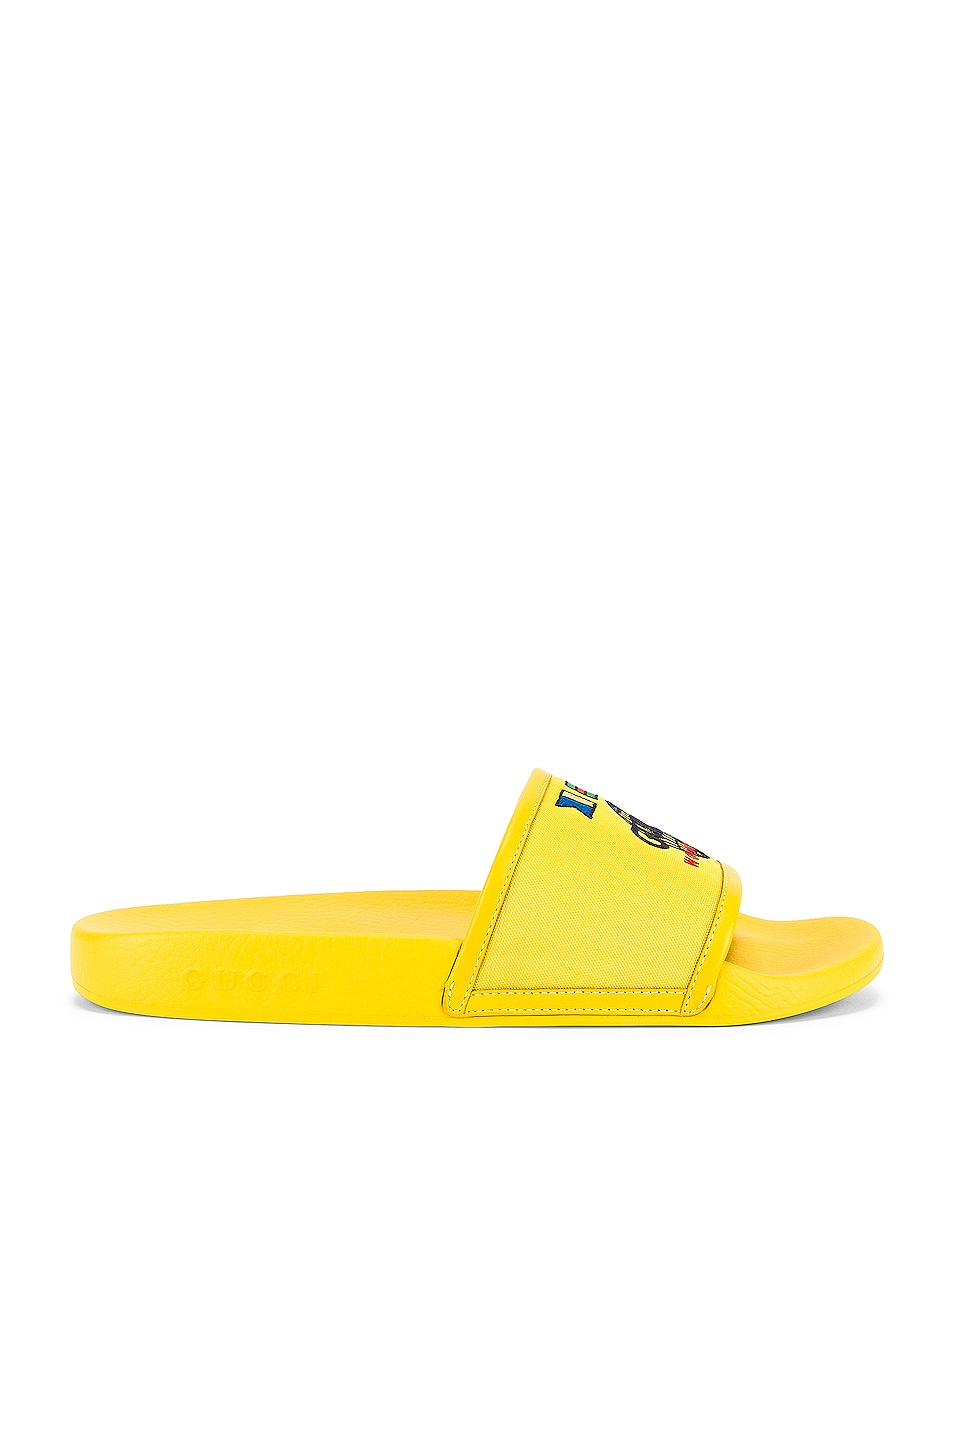 Image 2 of Gucci Pursuit Slide in Smile Yellow & Yellow